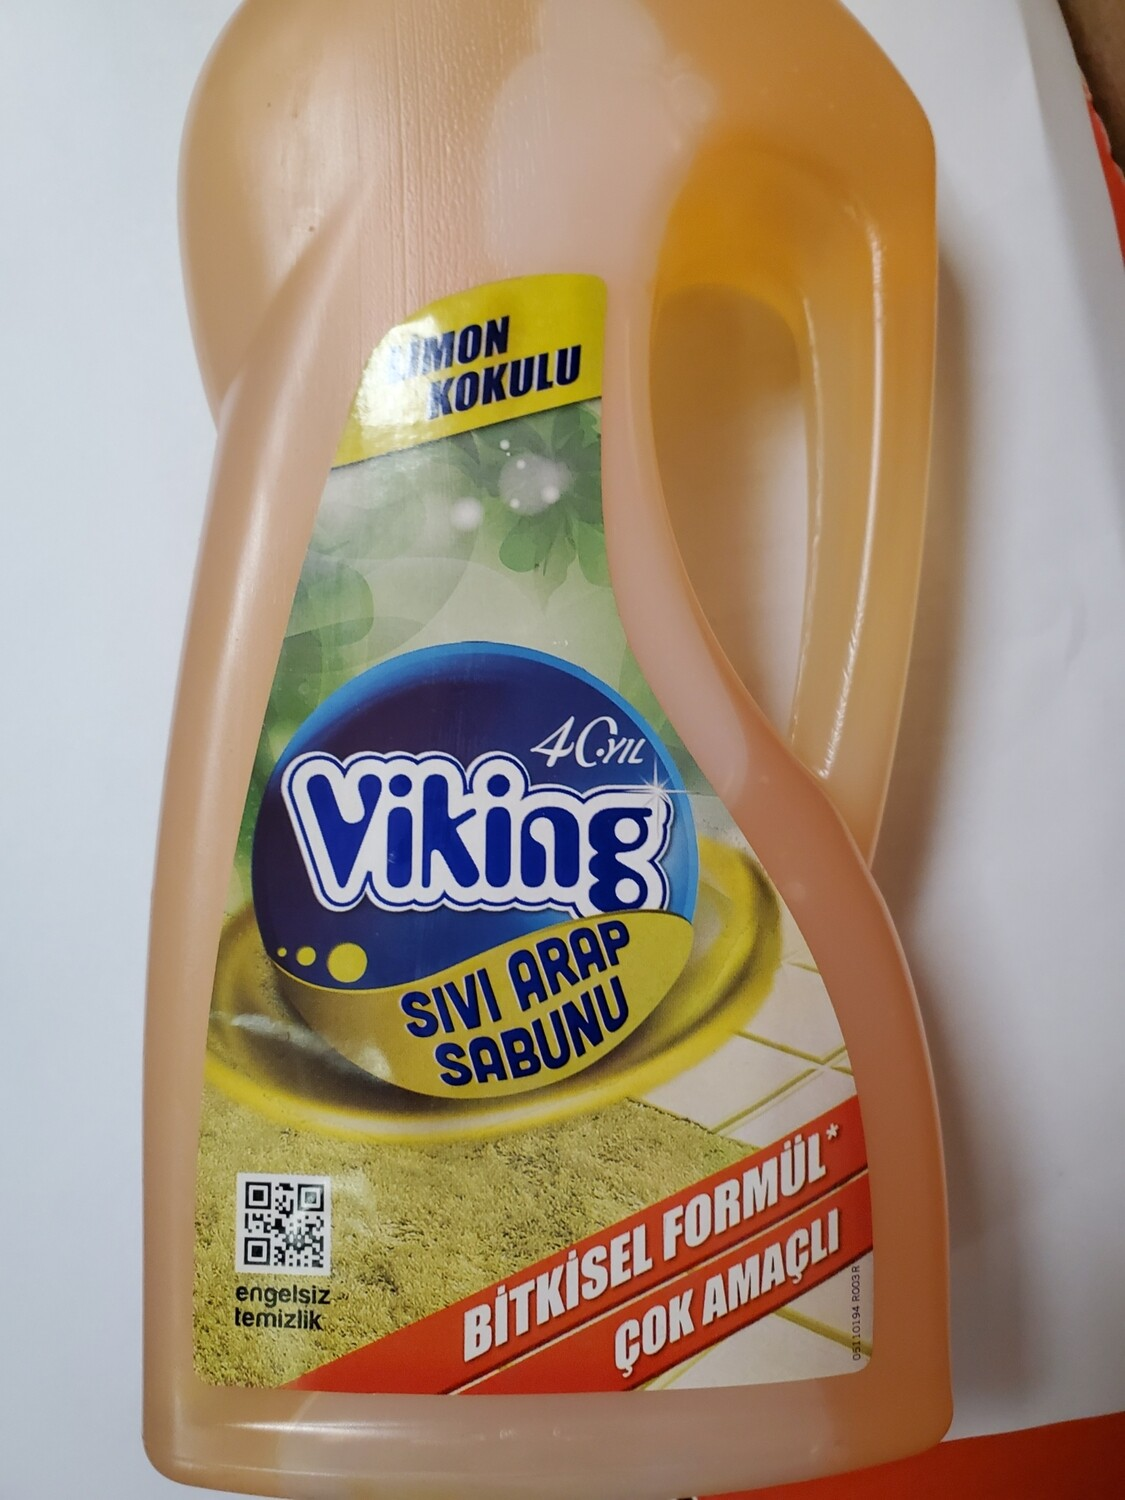 Viking Cleaning Soap Sivi Arap Sabunu with Lemon Sabun 750gr